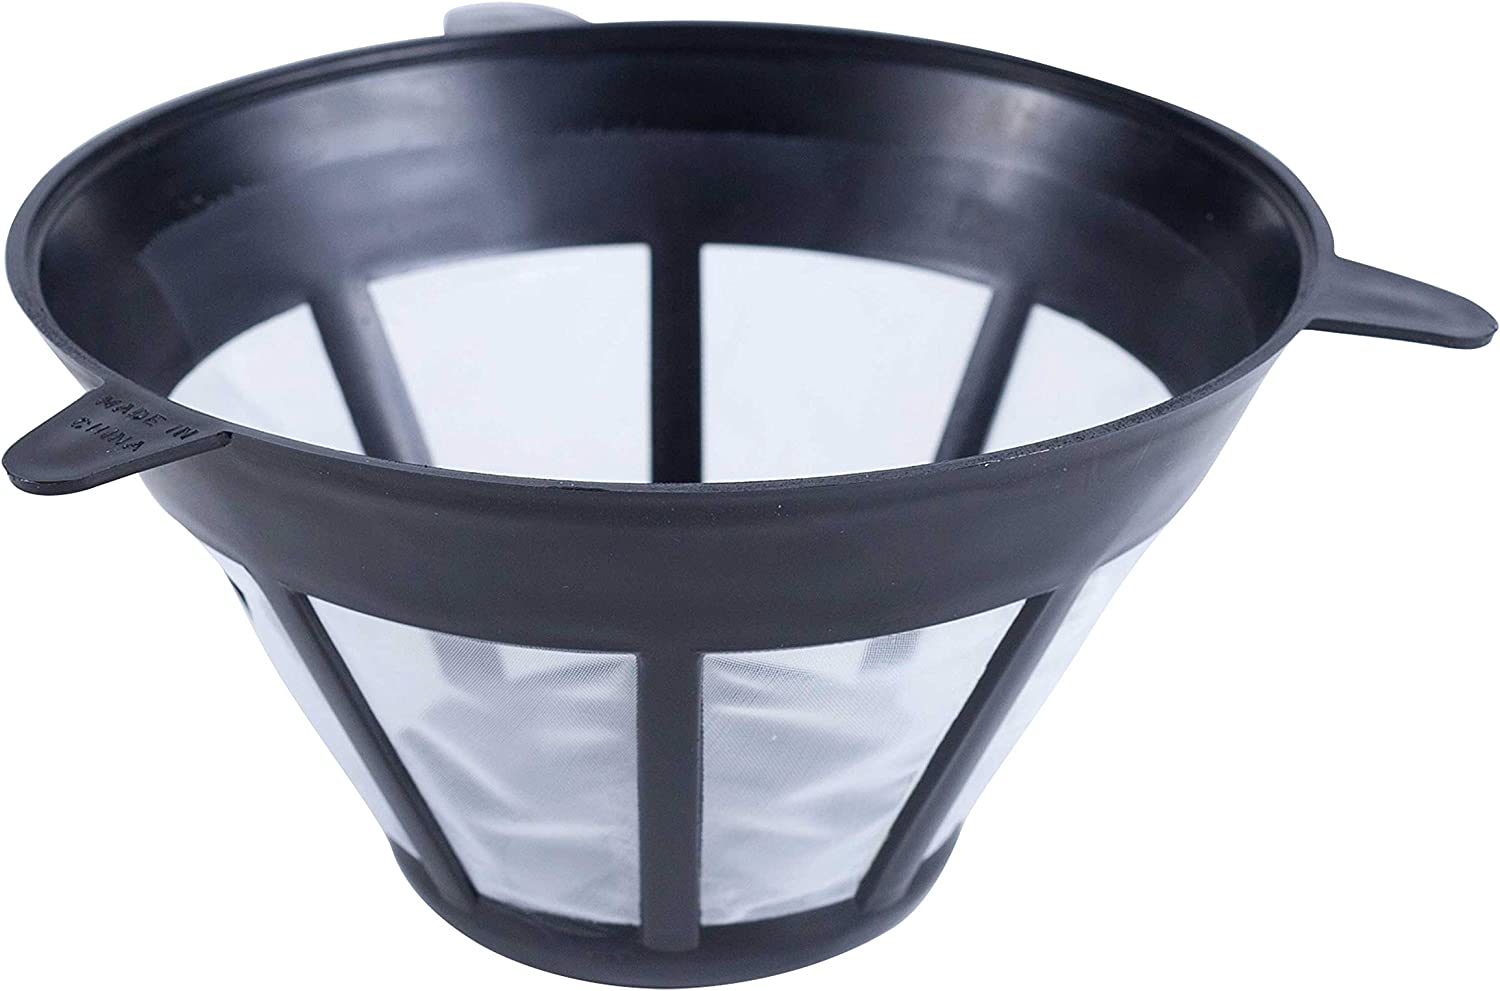 Fill 'N Brew Reusable Coffee Filter (Cone #4) - Fits am meisten Bosch, Regal, Krups und Melitta #4 Coffee Makers